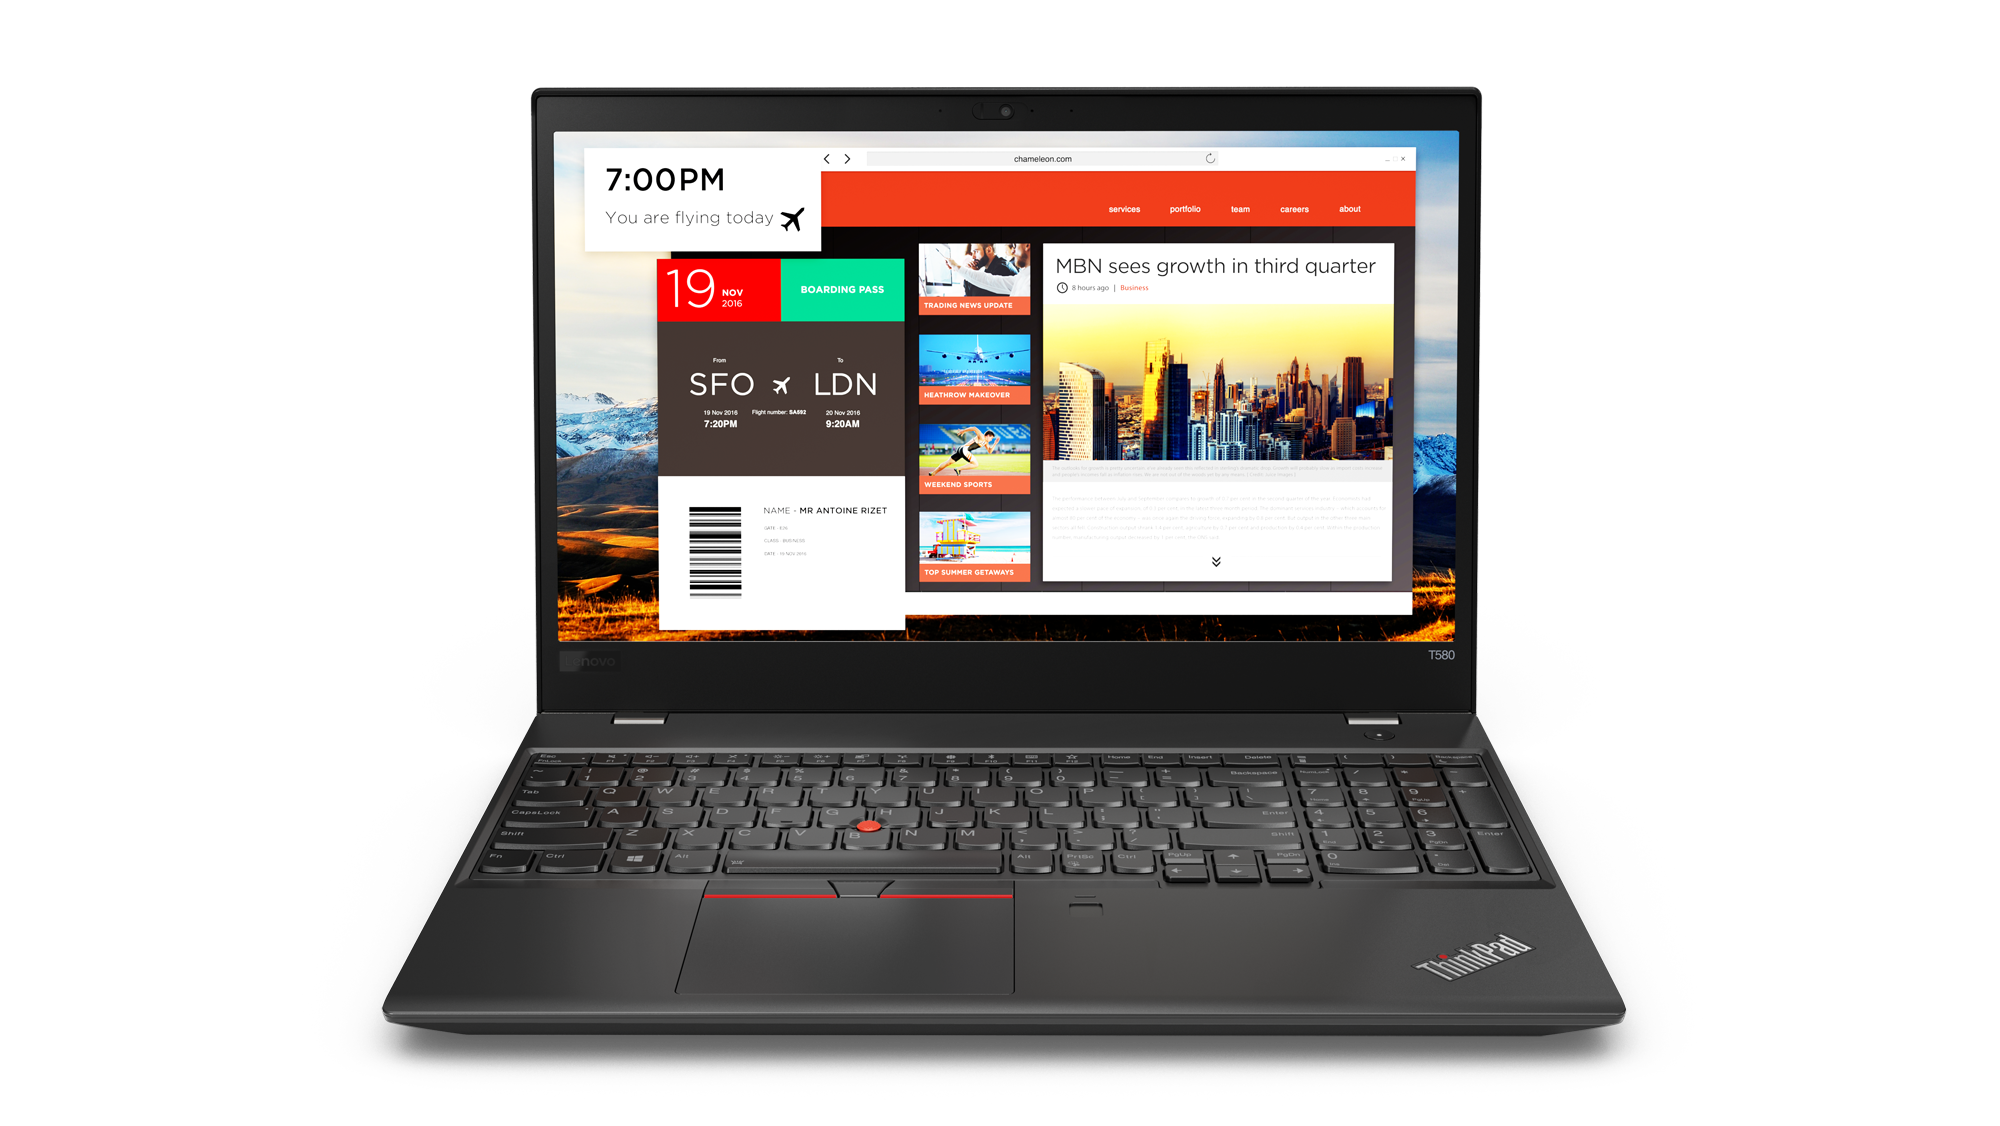 20L90021MC Lenovo Thinkpad T580 15.6FHD/i5-8250U/512SSD/8GB/AMD MX150/4G/W10P/černý